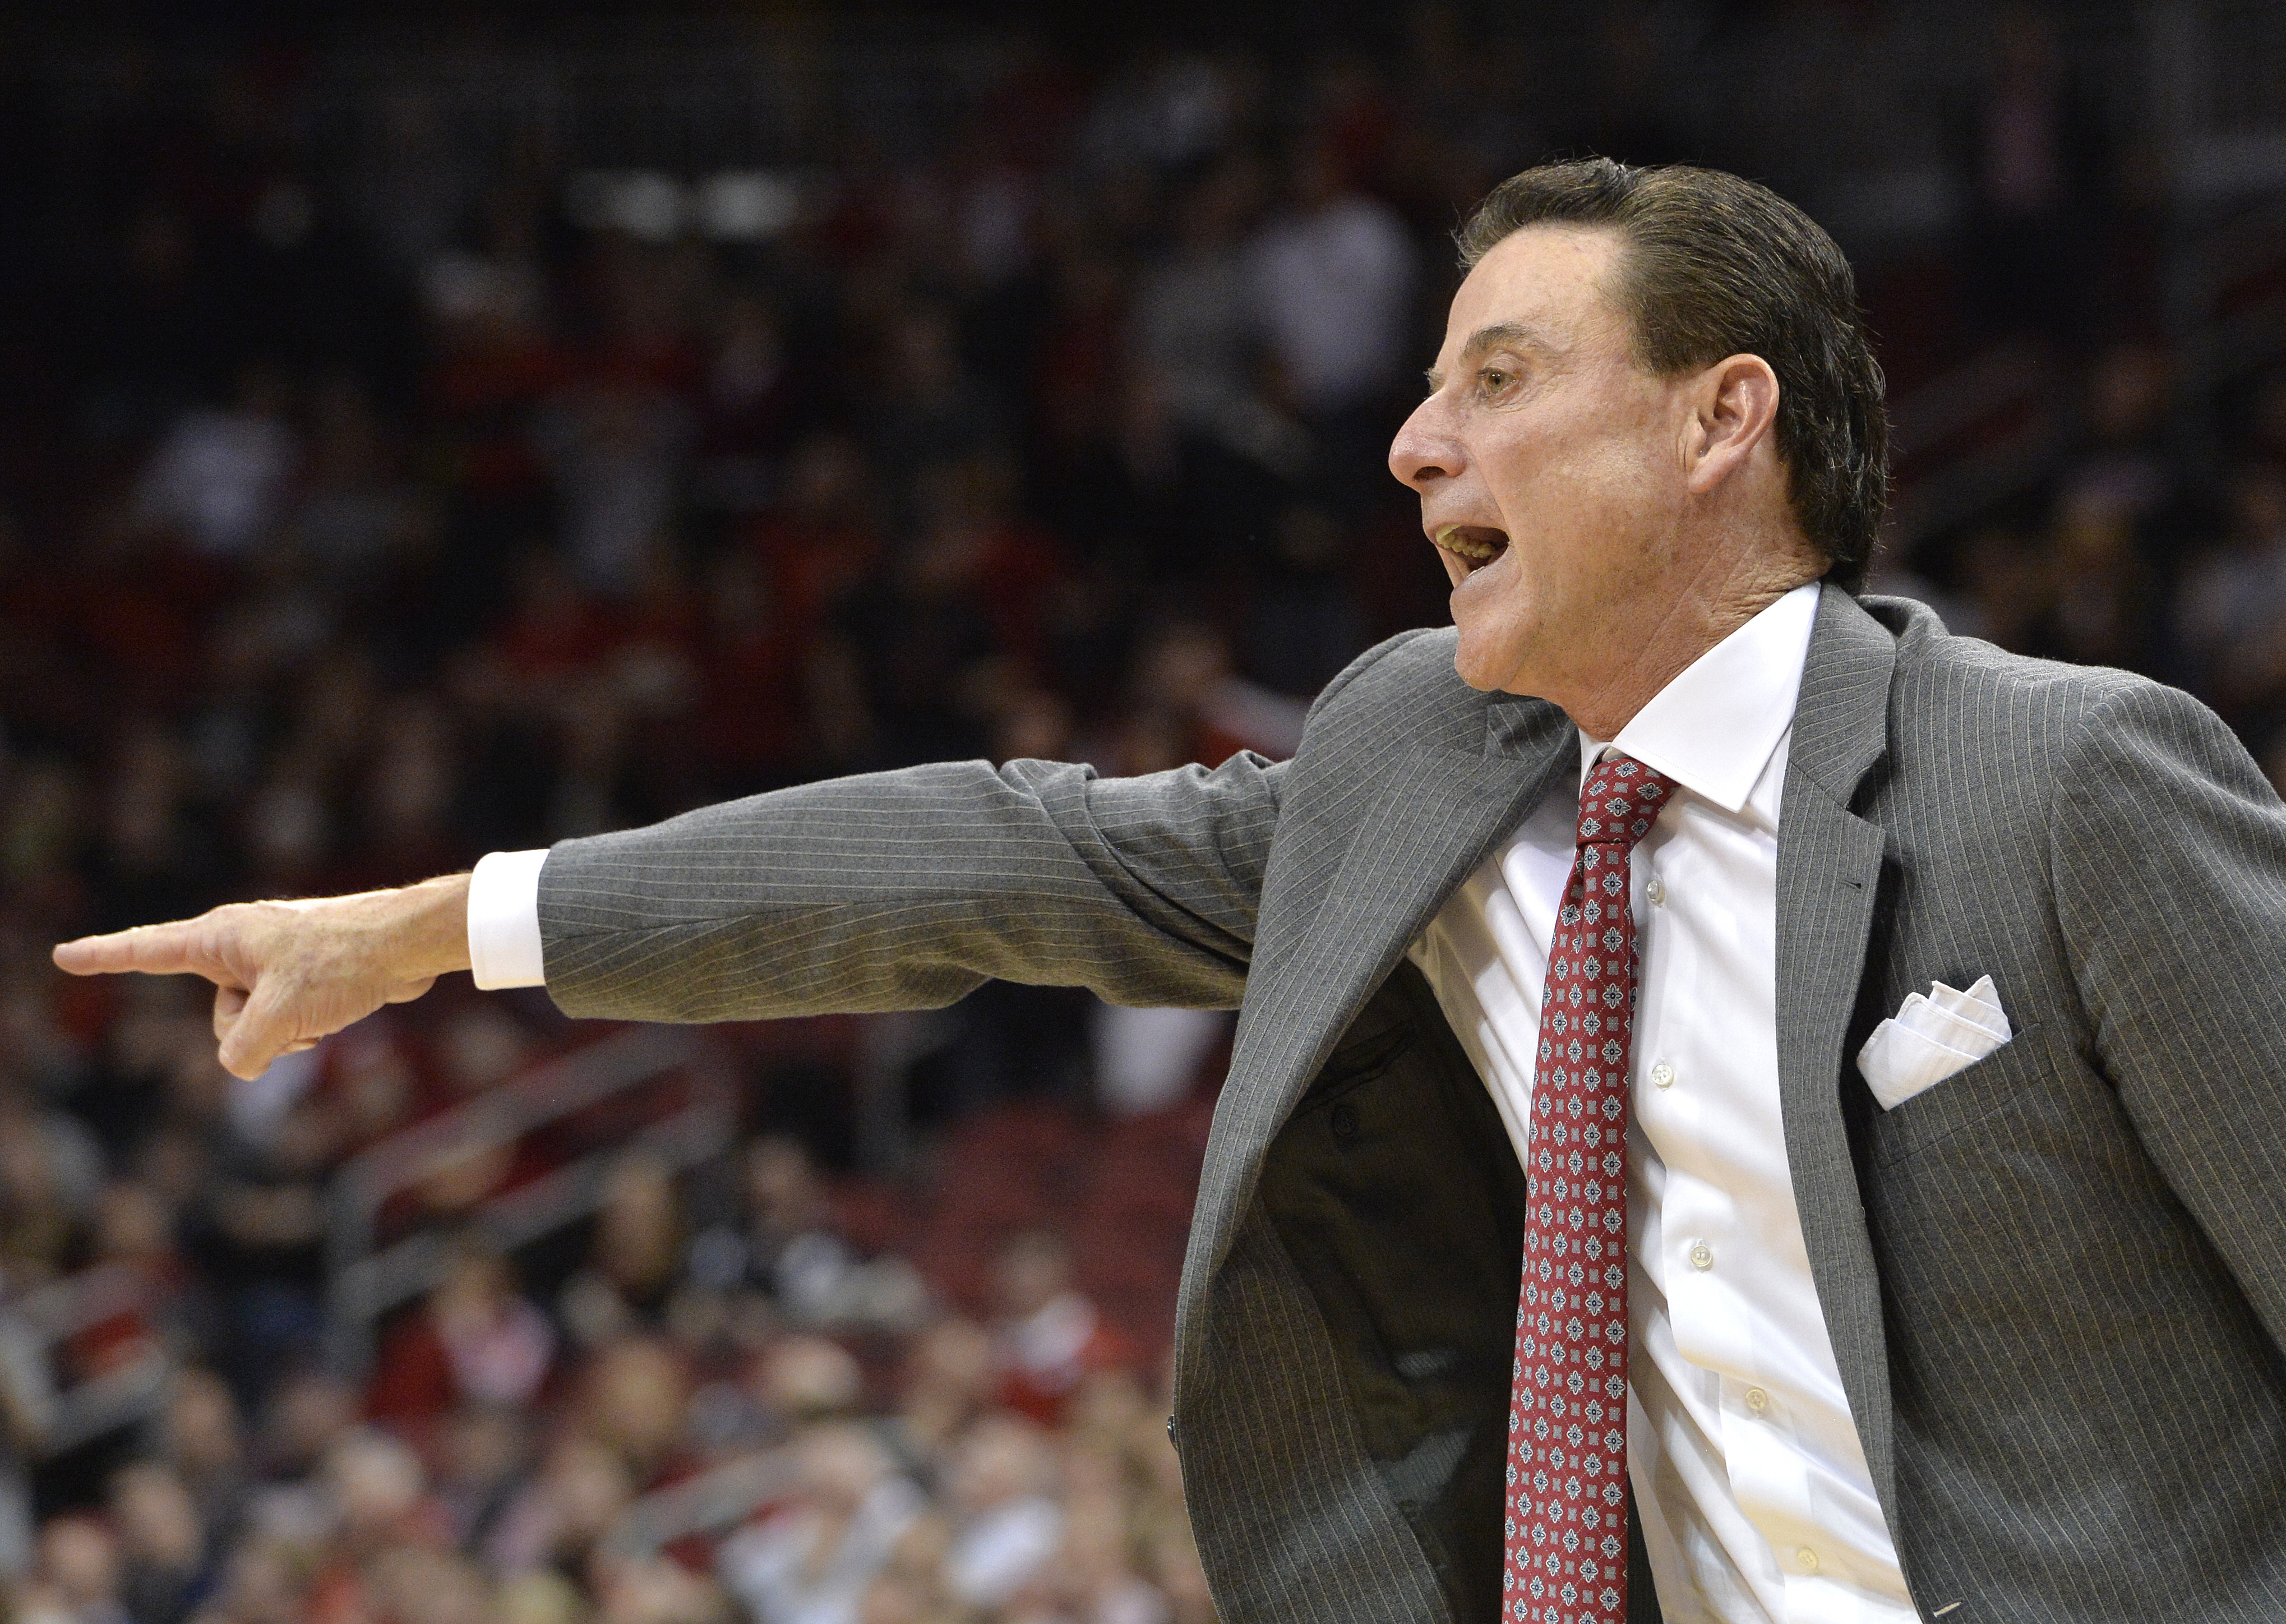 Louisville's head coach Rick Pitino shouts instructions to his team during the second half of an NCAA college basketball game against Virginia, Wednesday, Dec. 28, 2016, in Louisville, Ky. Virginia won 61-53. (AP Photo/Timothy D. Easley)